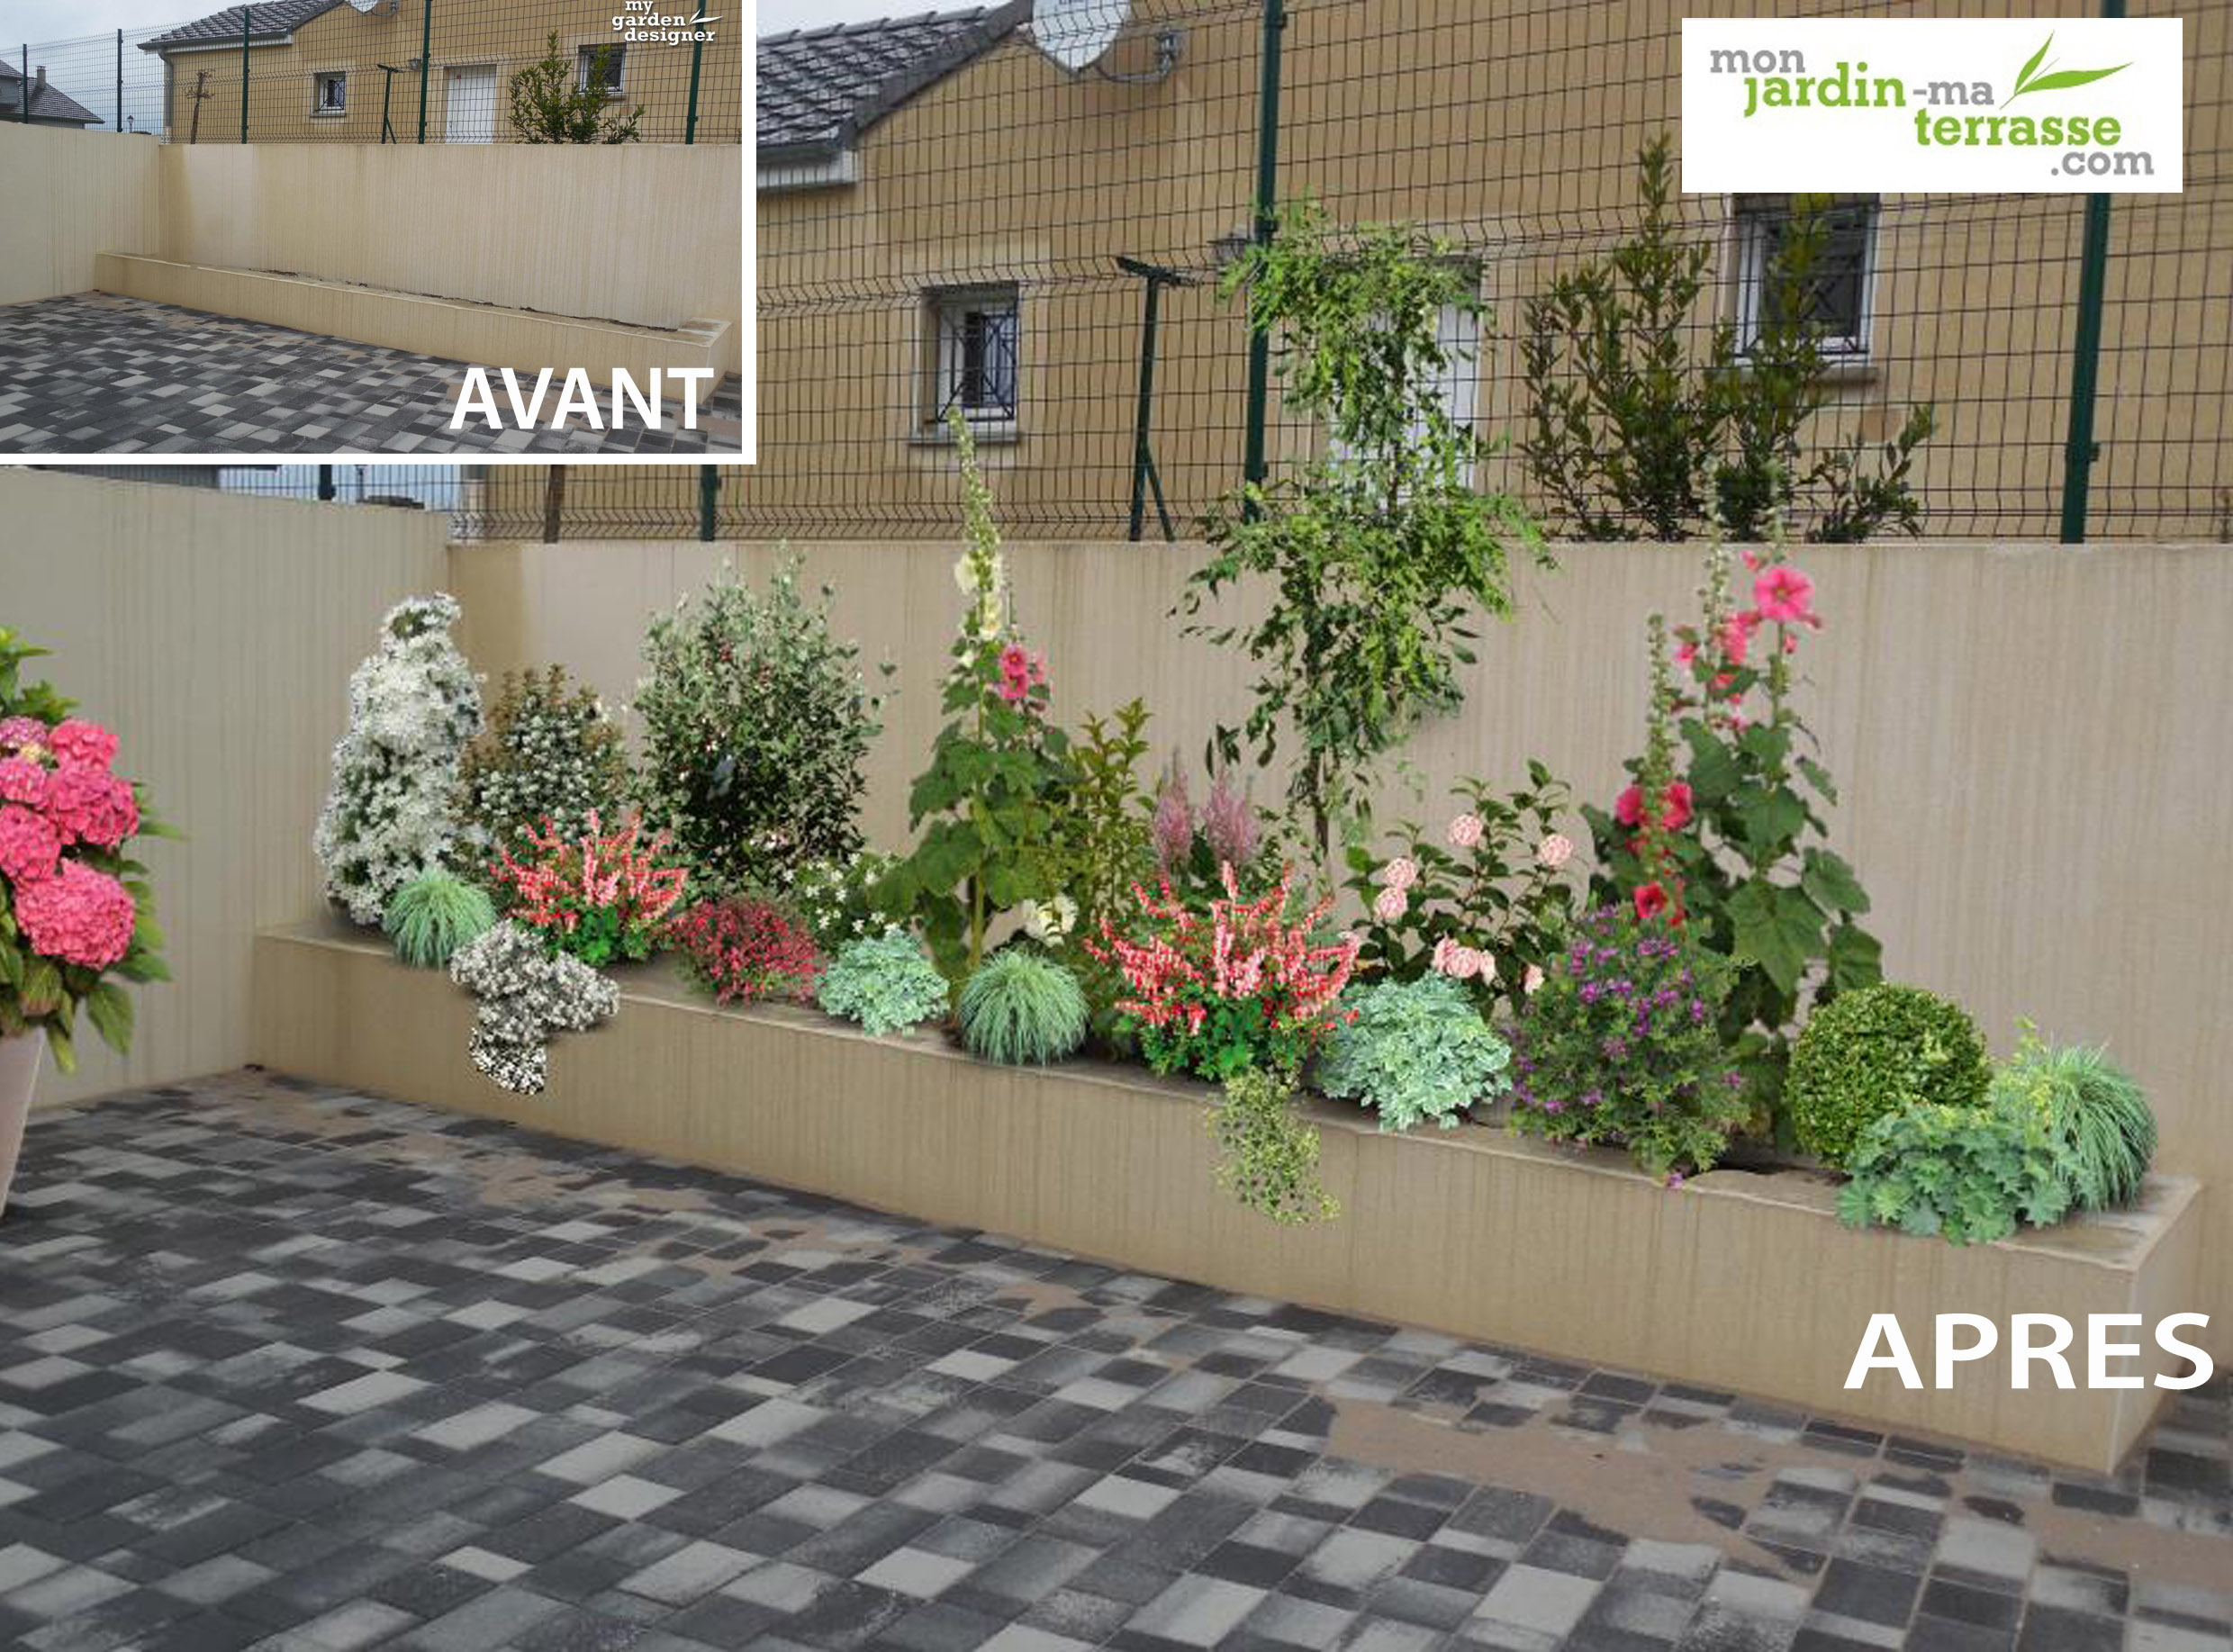 Amenagement jardiniere terrasse monjardin - Amenagement de terrasse photos ...